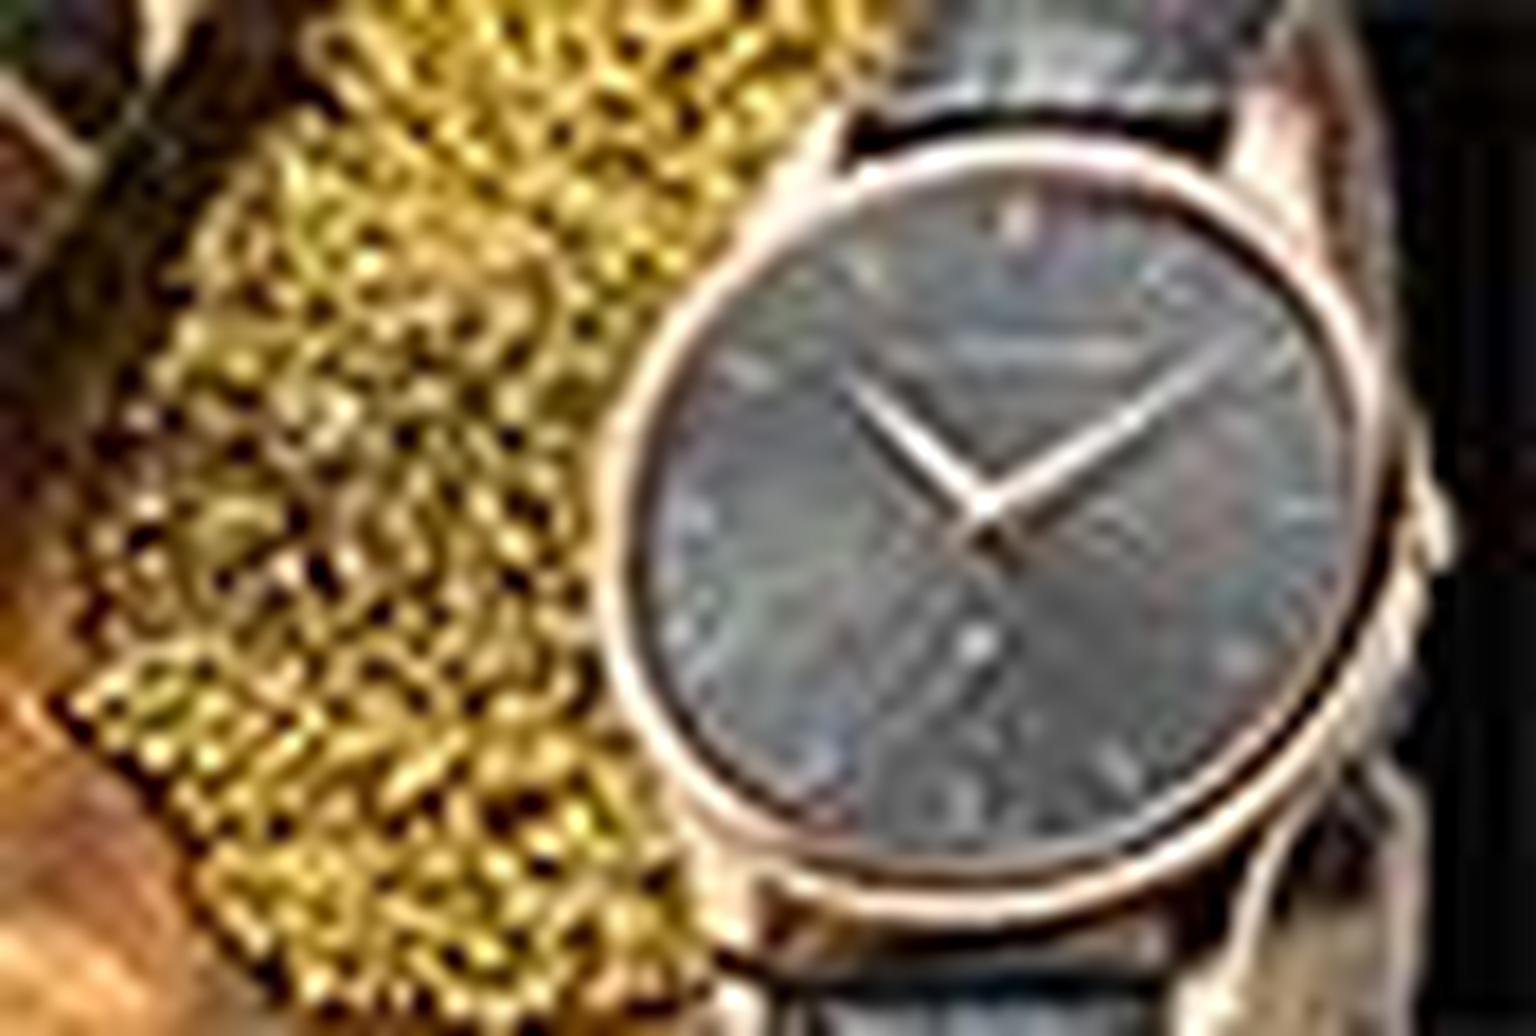 Chopard LUC watch Fairmined gold